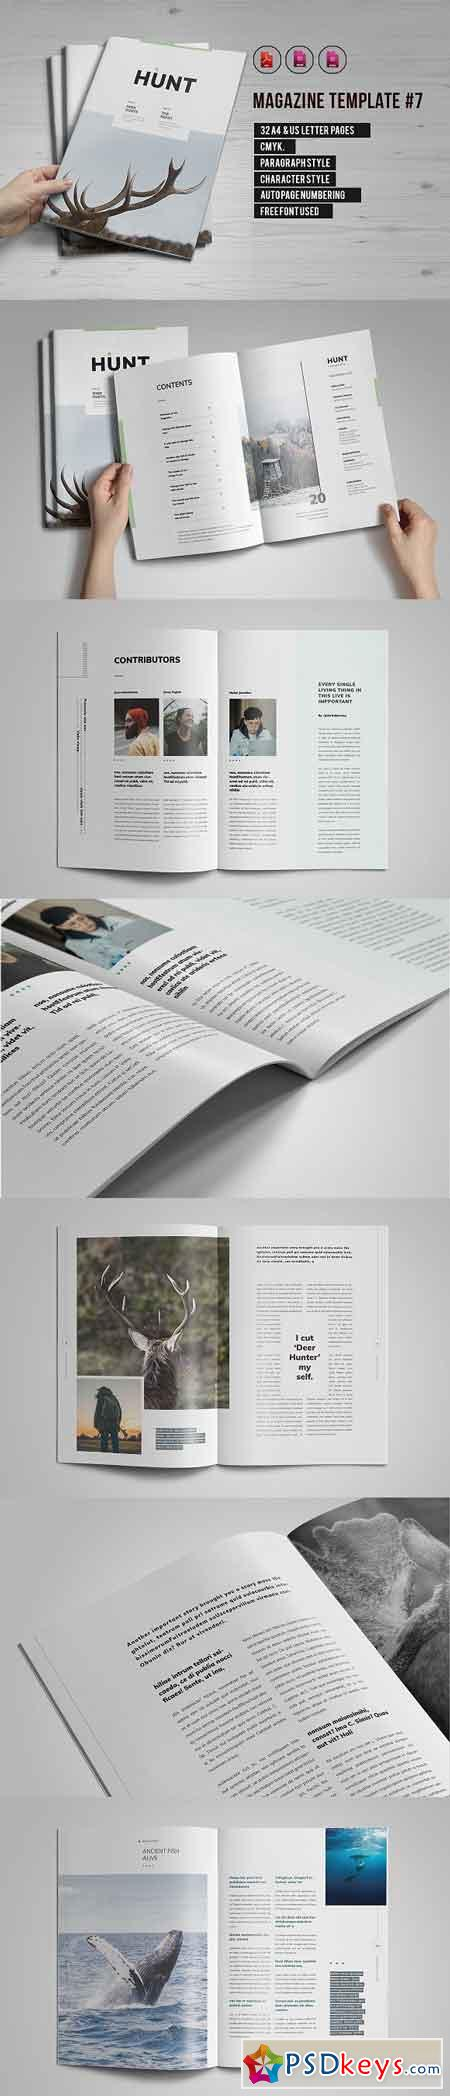 Indesign Magazine Template 7 2820974